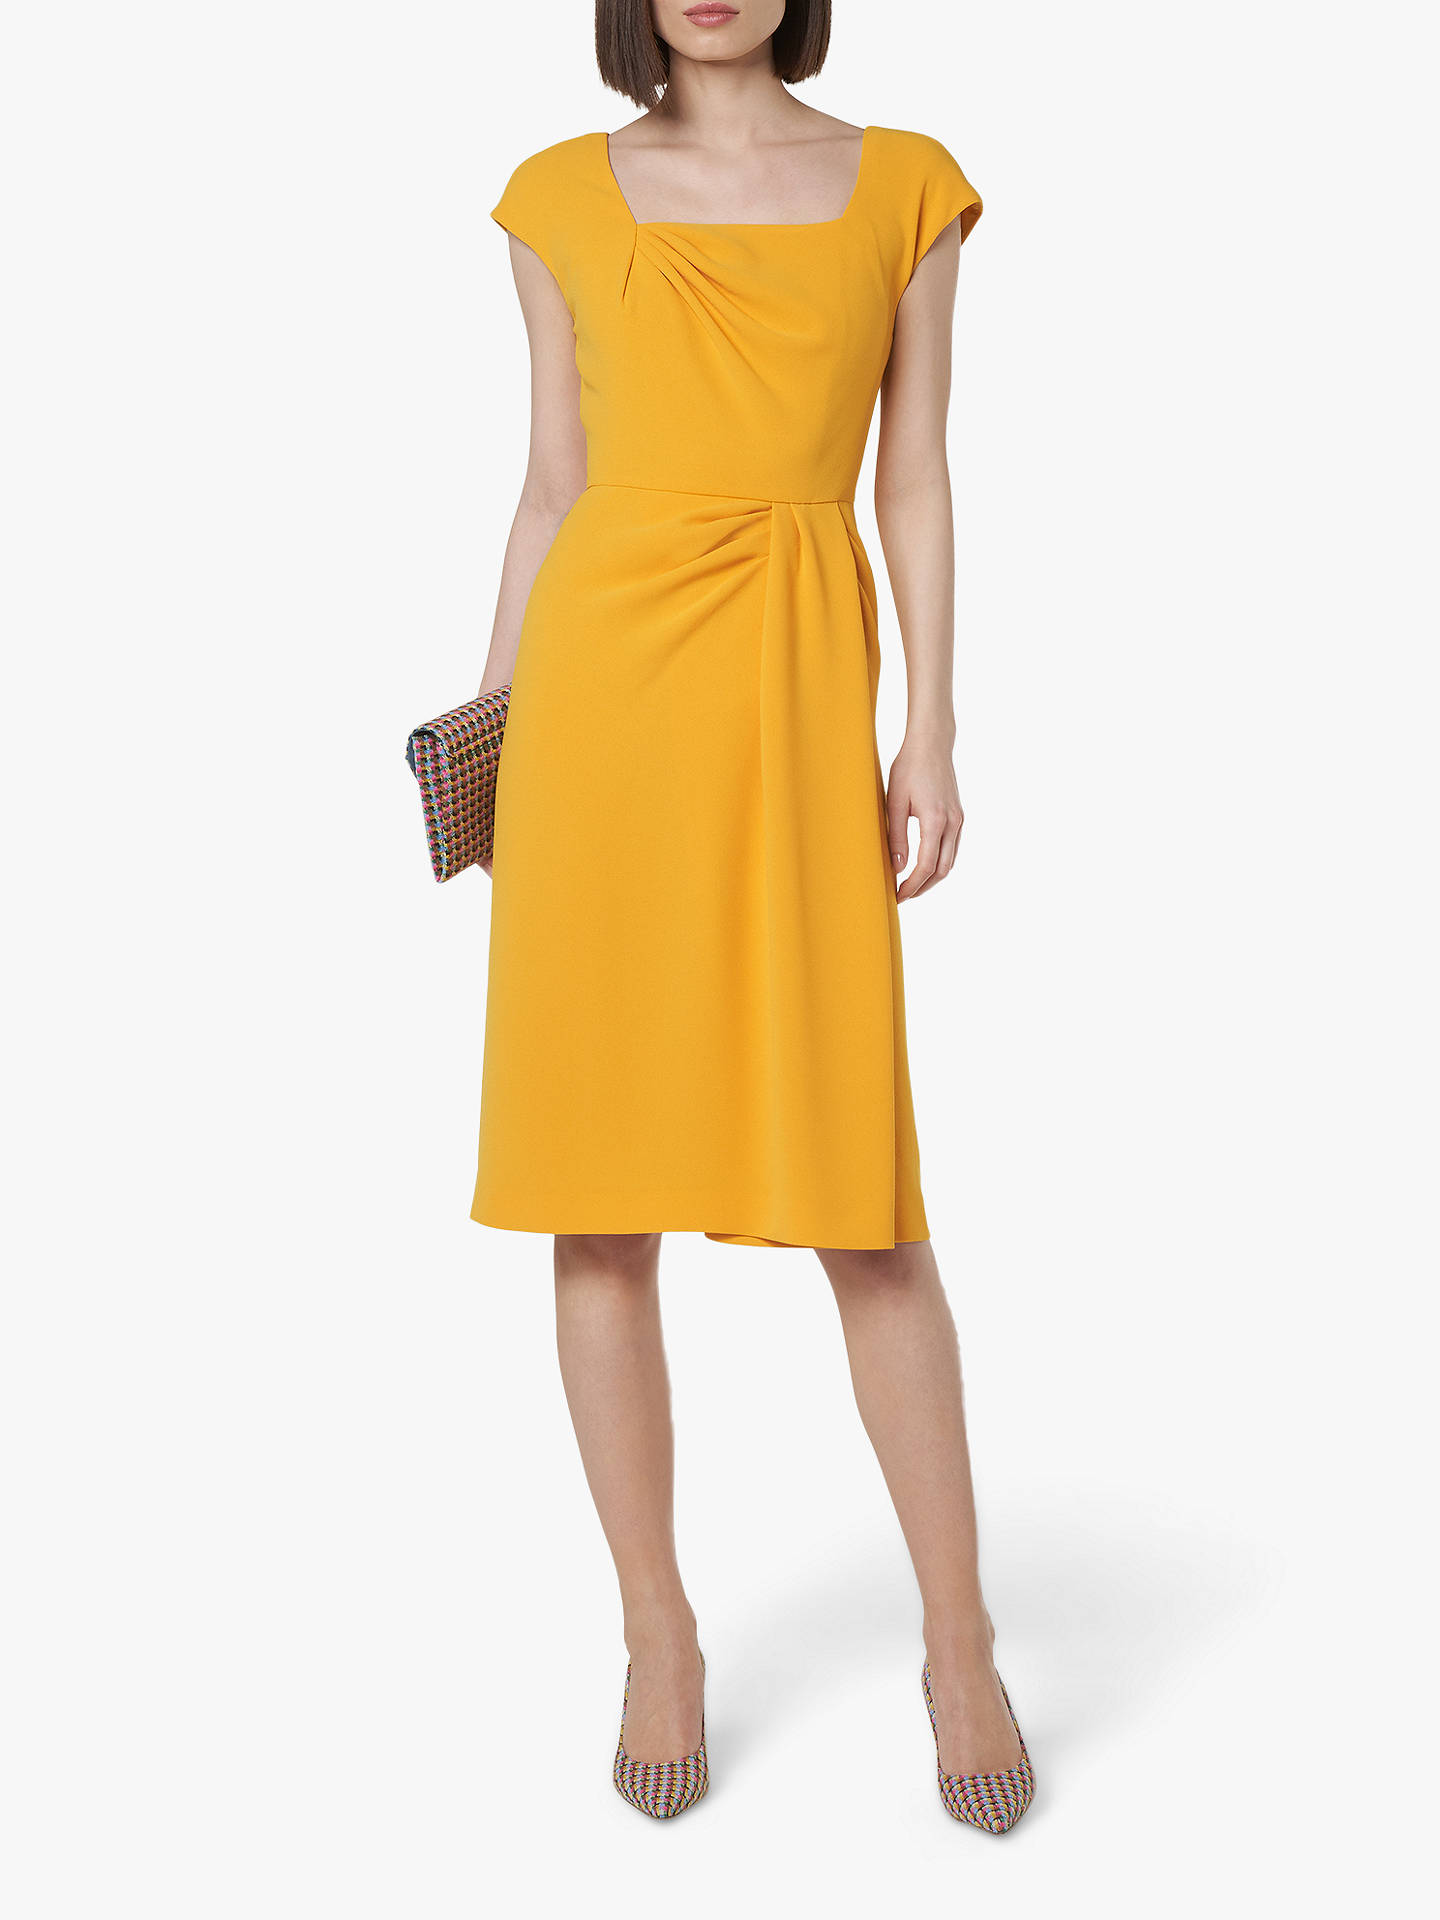 coupon codes shades of usa cheap sale L.K.Bennett Denise Fitted Dress, Yellow at John Lewis & Partners